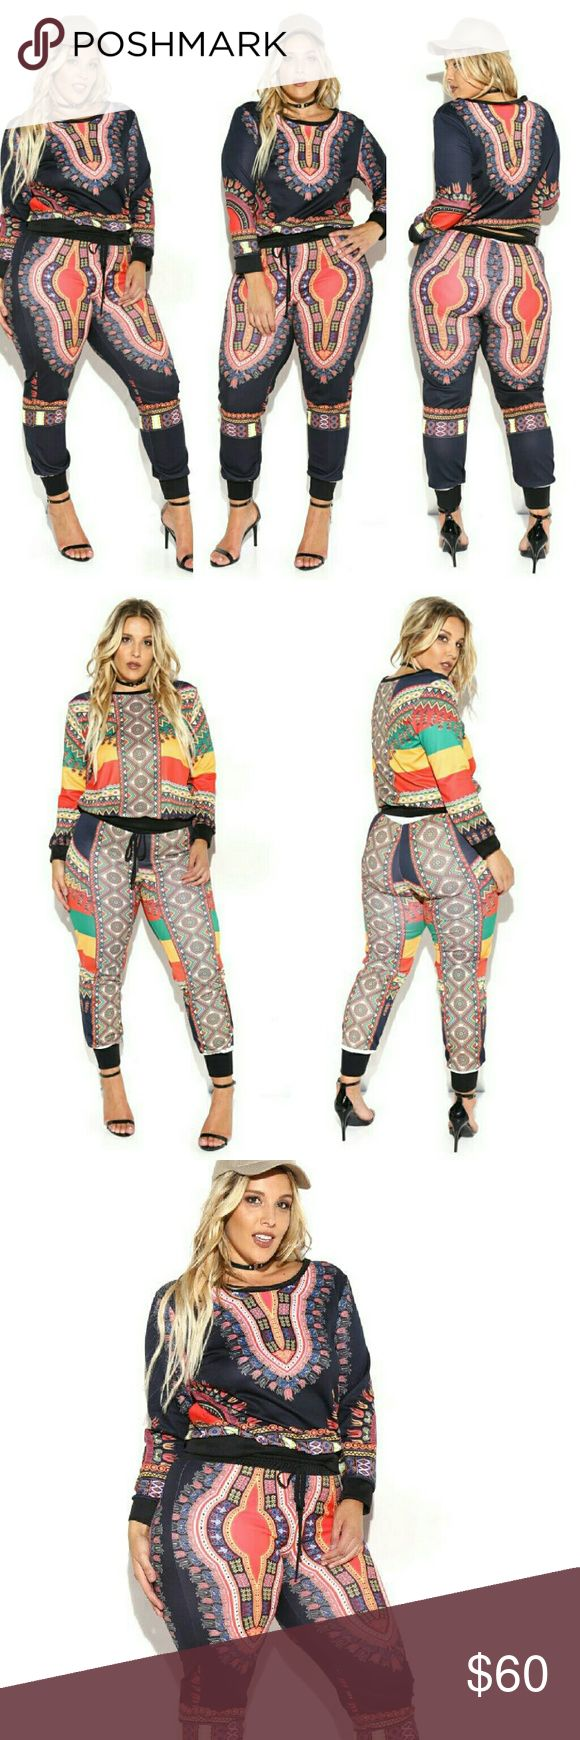 Dashiki Print Sweatshirt & Sweatpants Set A set that includes a sweatshirt with a boat neckline and long sleeves. Includes a pair of sweatpants with a drawstring waist. Dashiki print on both items.  - 95% Polyester 5% Spandex  - Hand Wash Cold ComeCorrect  Pants Track Pants & Joggers